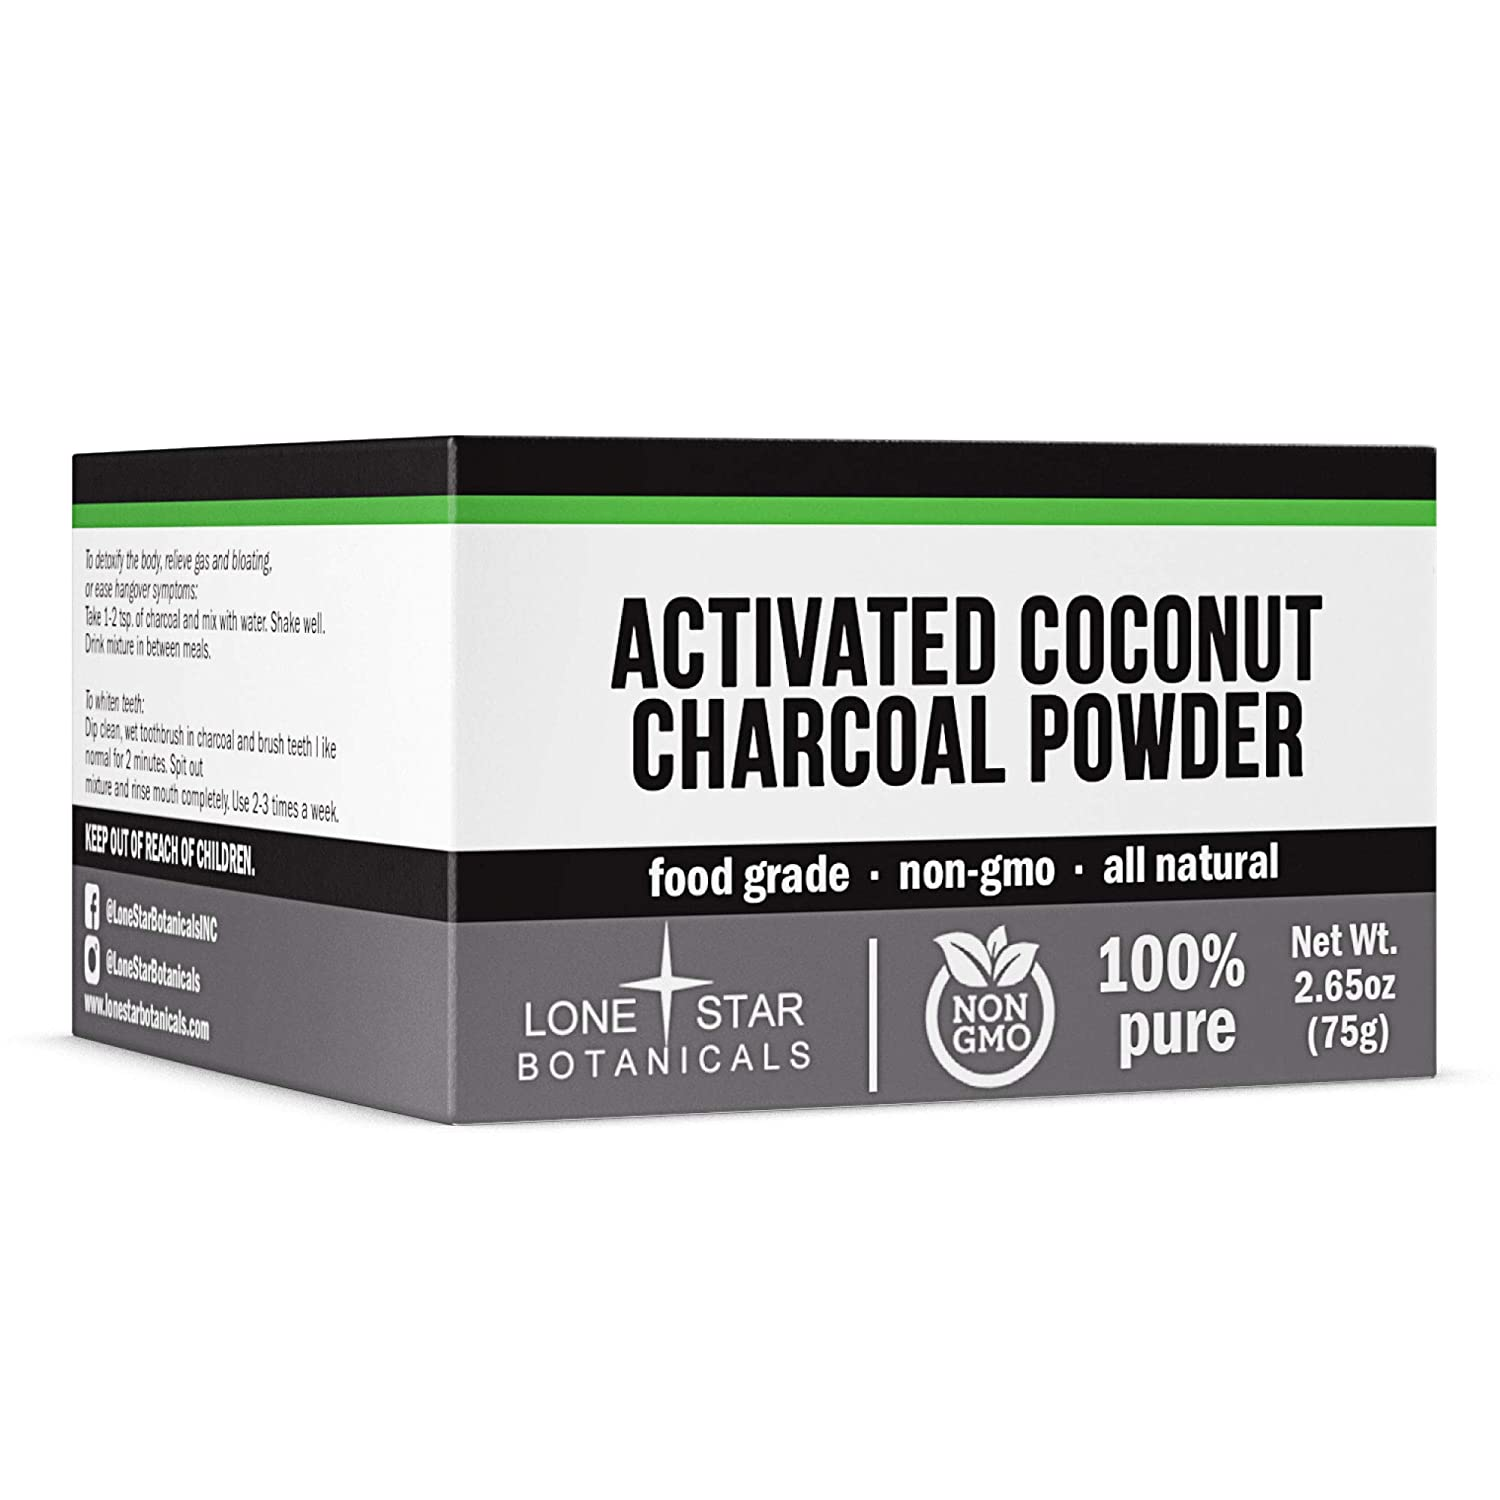 Lone Star Botanicals - Activated Coconut Charcoal Powder - Food Grade & GMO-Free for Teeth Whitening, Facial Masks, Soap Making, Skin Health - Rejuvenates Skin & Hair - Helps w/Digestion & Bug Bites